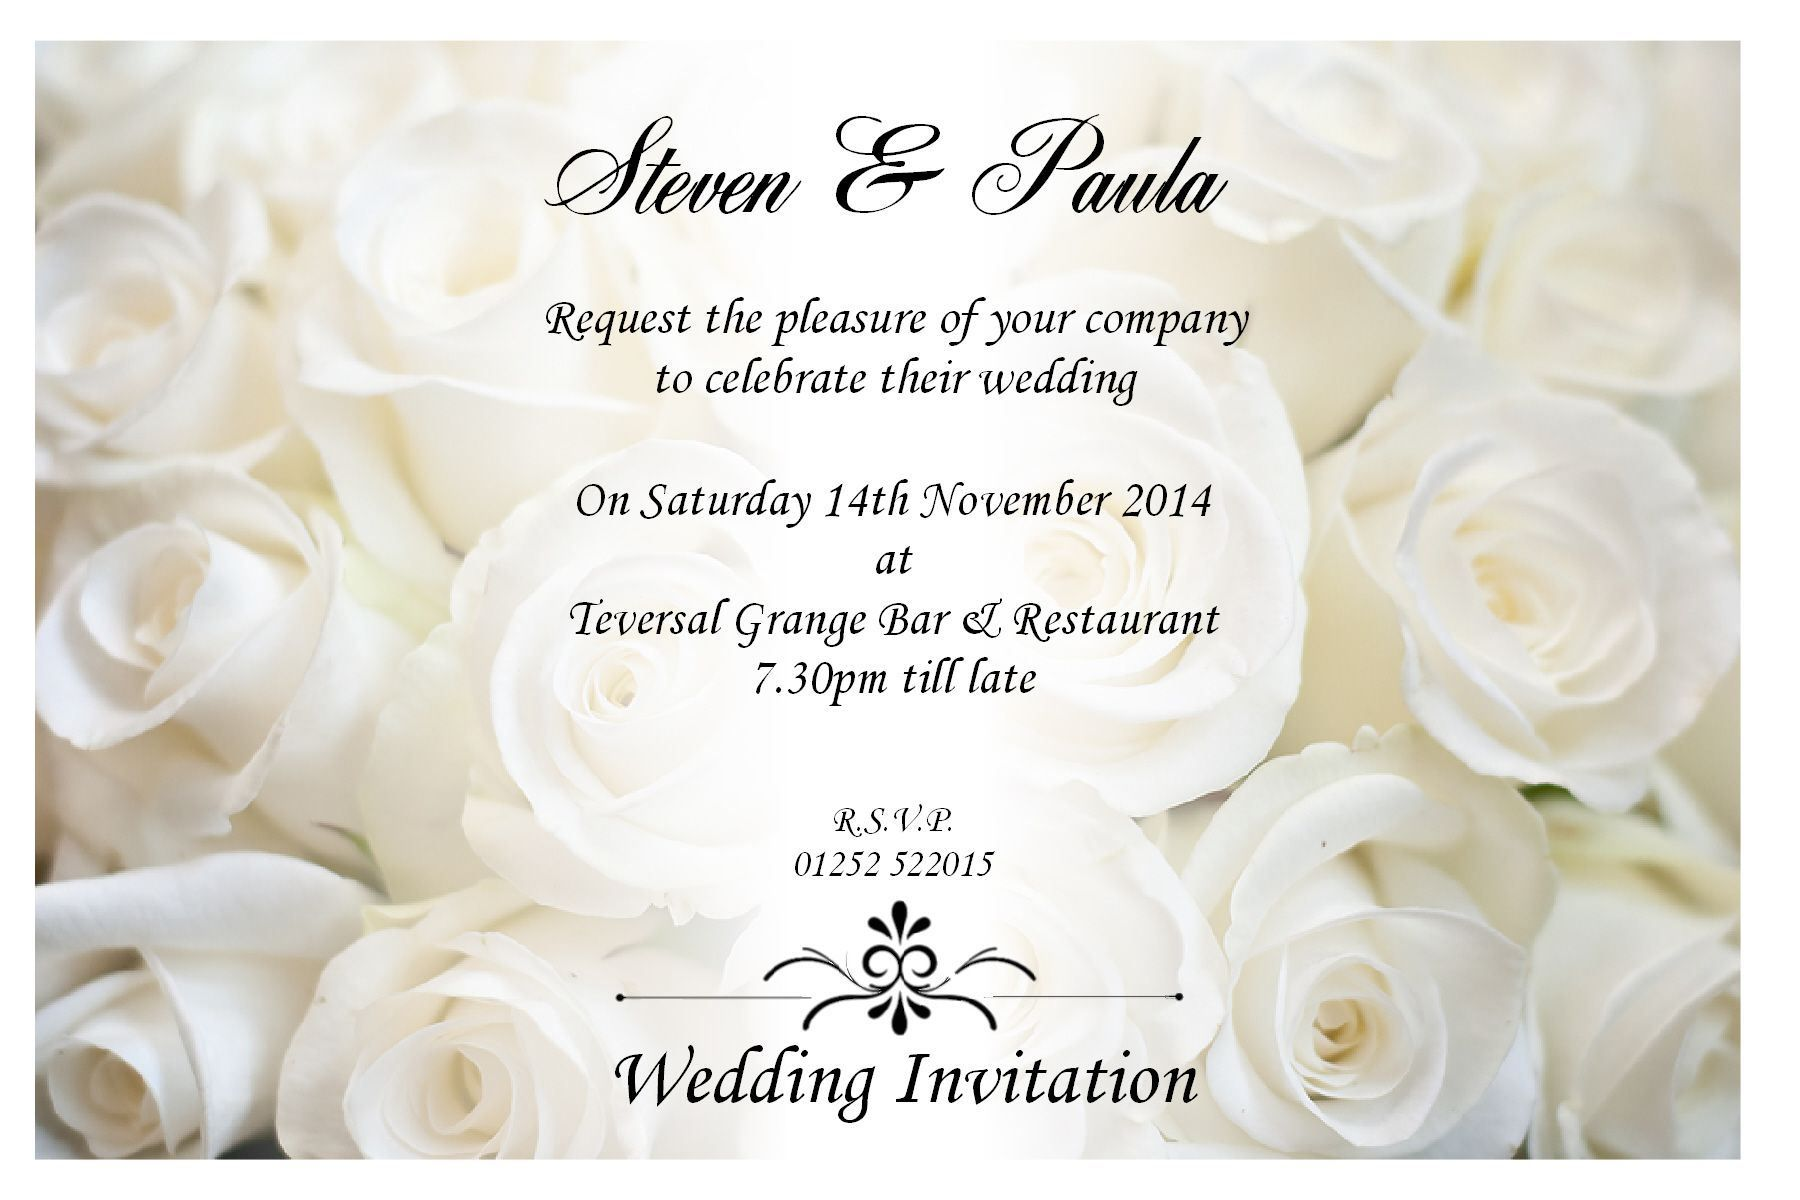 Sample wedding invitation by email wedding invitations for Wedding invitation cards nelspruit